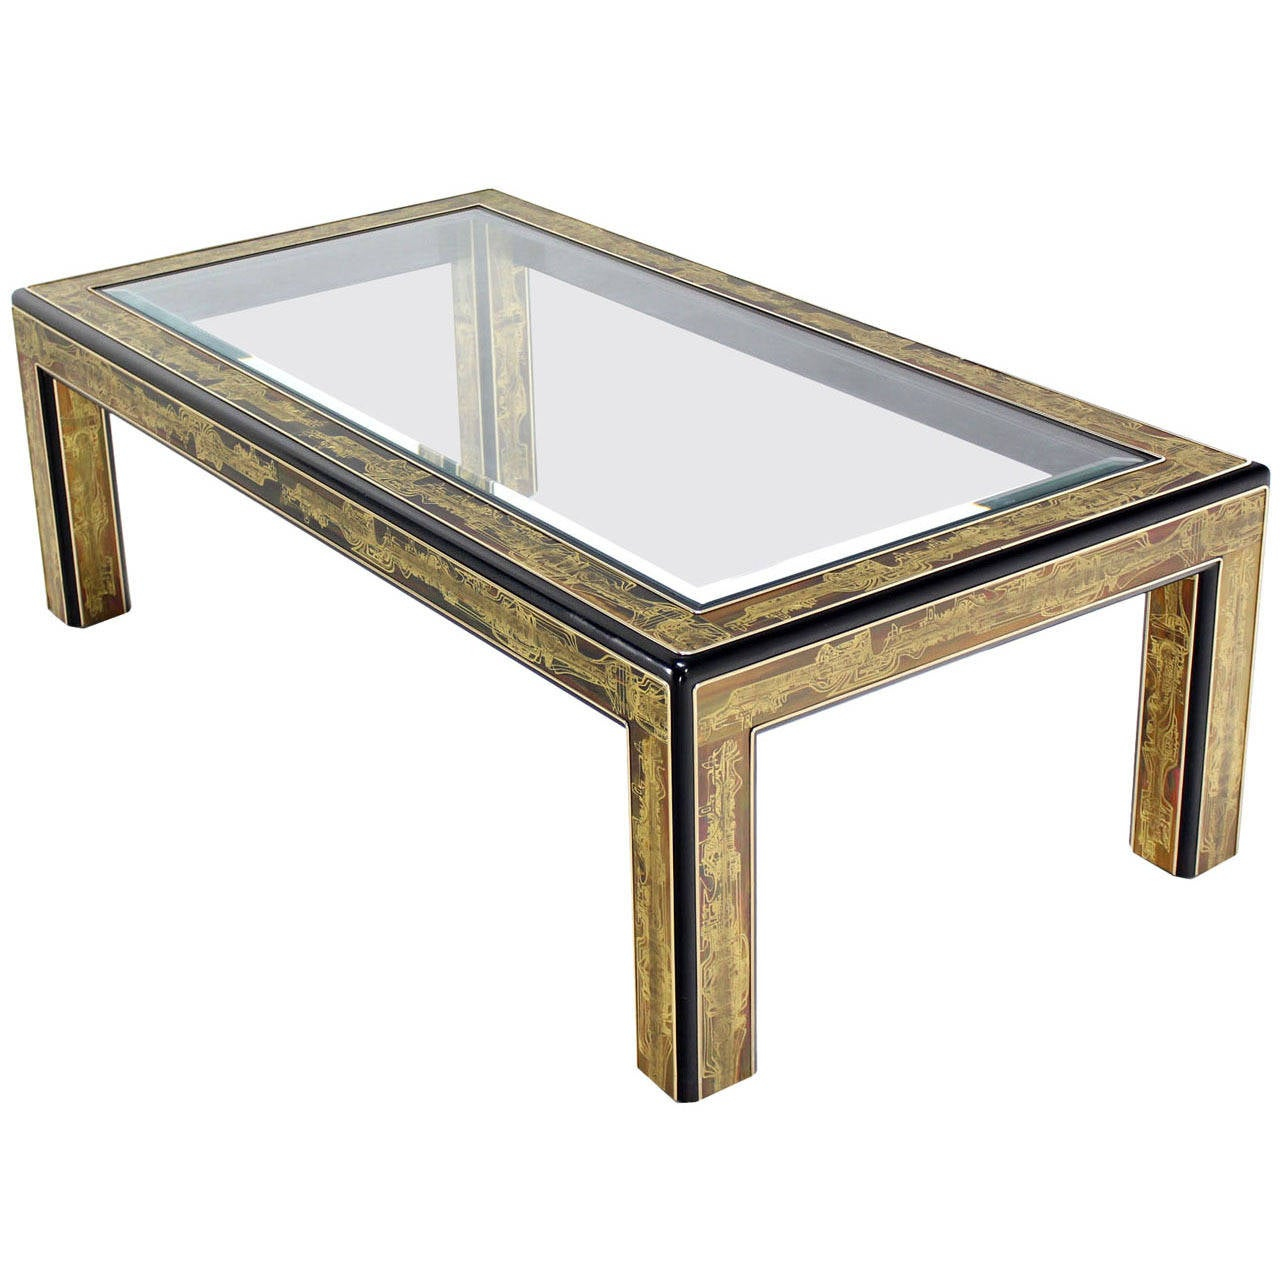 Rectangular glass top brass and wood base coffee table by for Coffee tables glass top